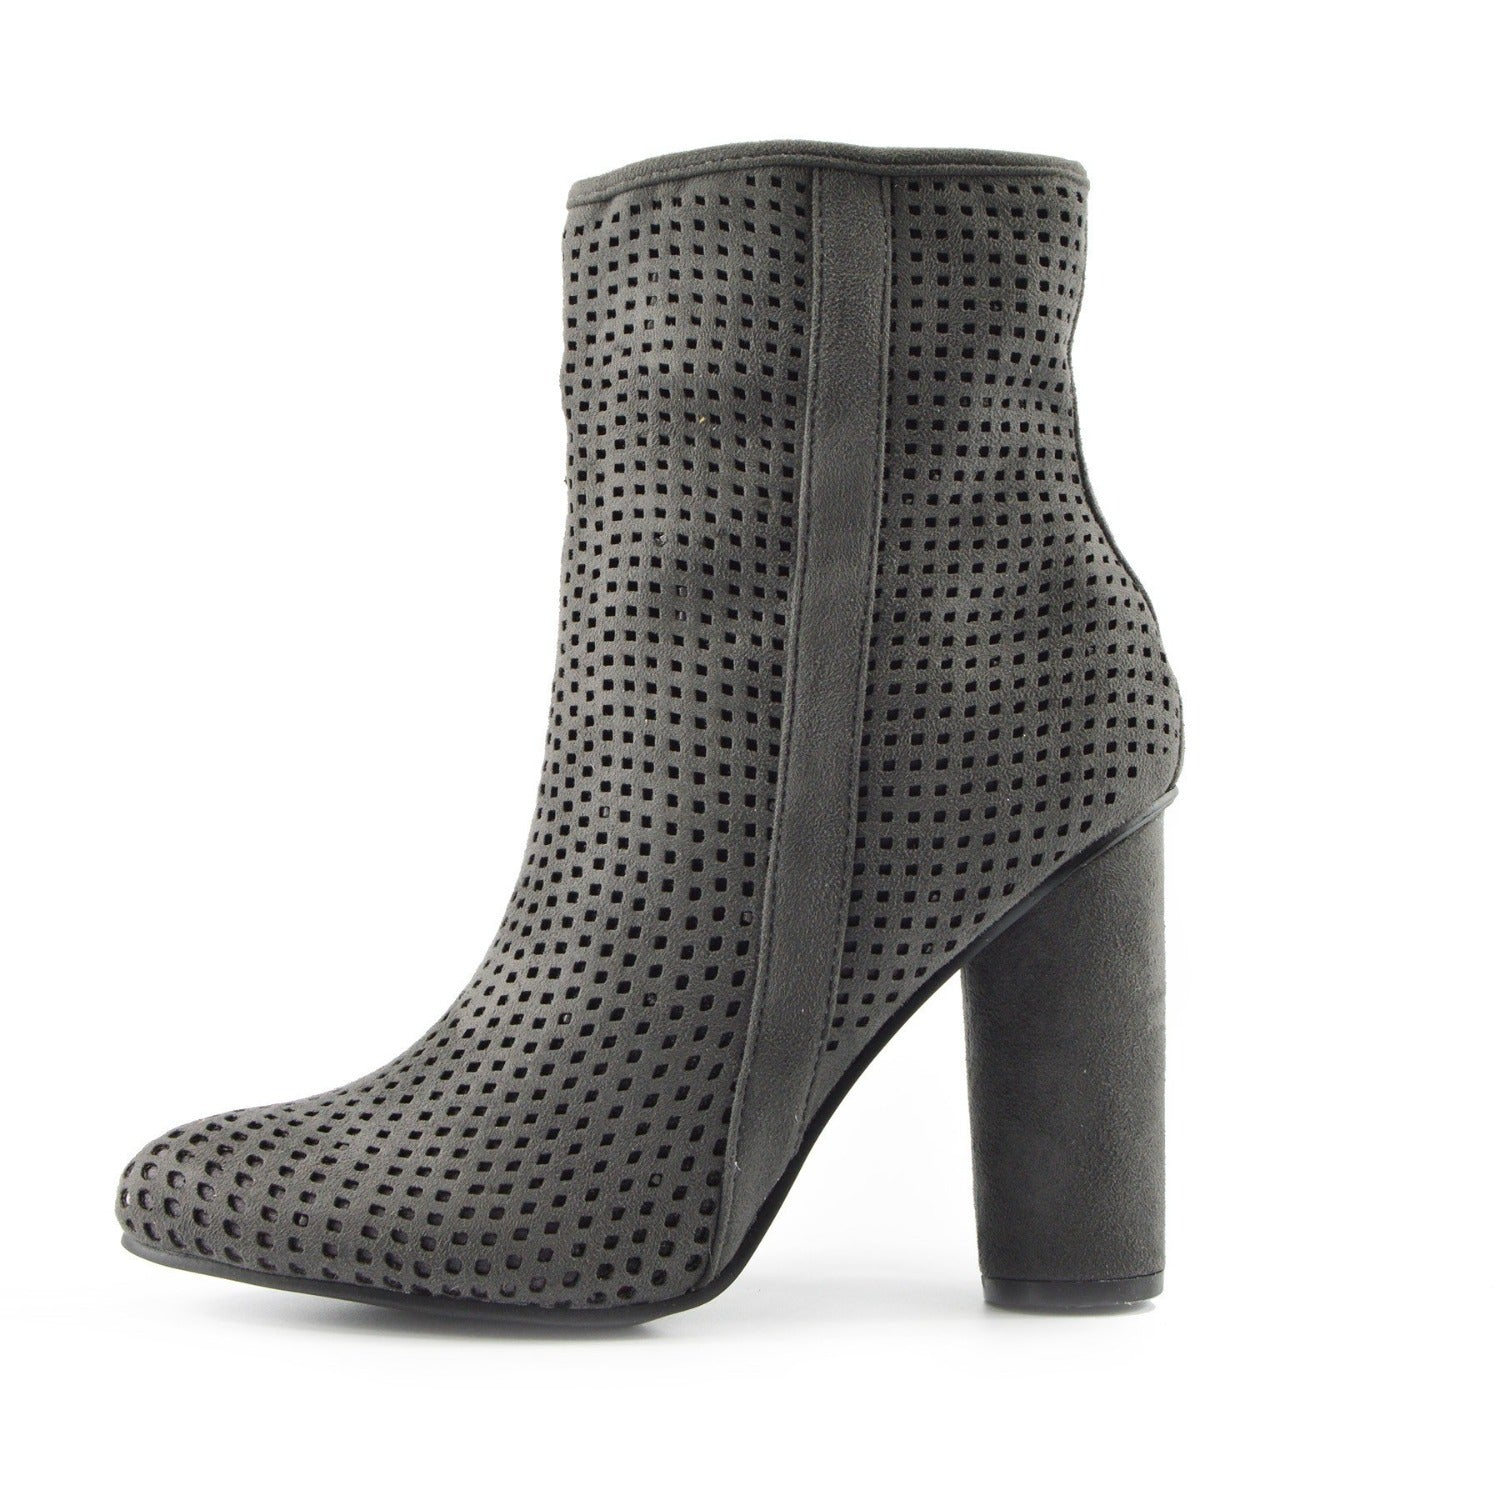 05f3f06ac4d Molly Perforated Pattern Block Heel Ankle Boot - Grey - Kickfootwear